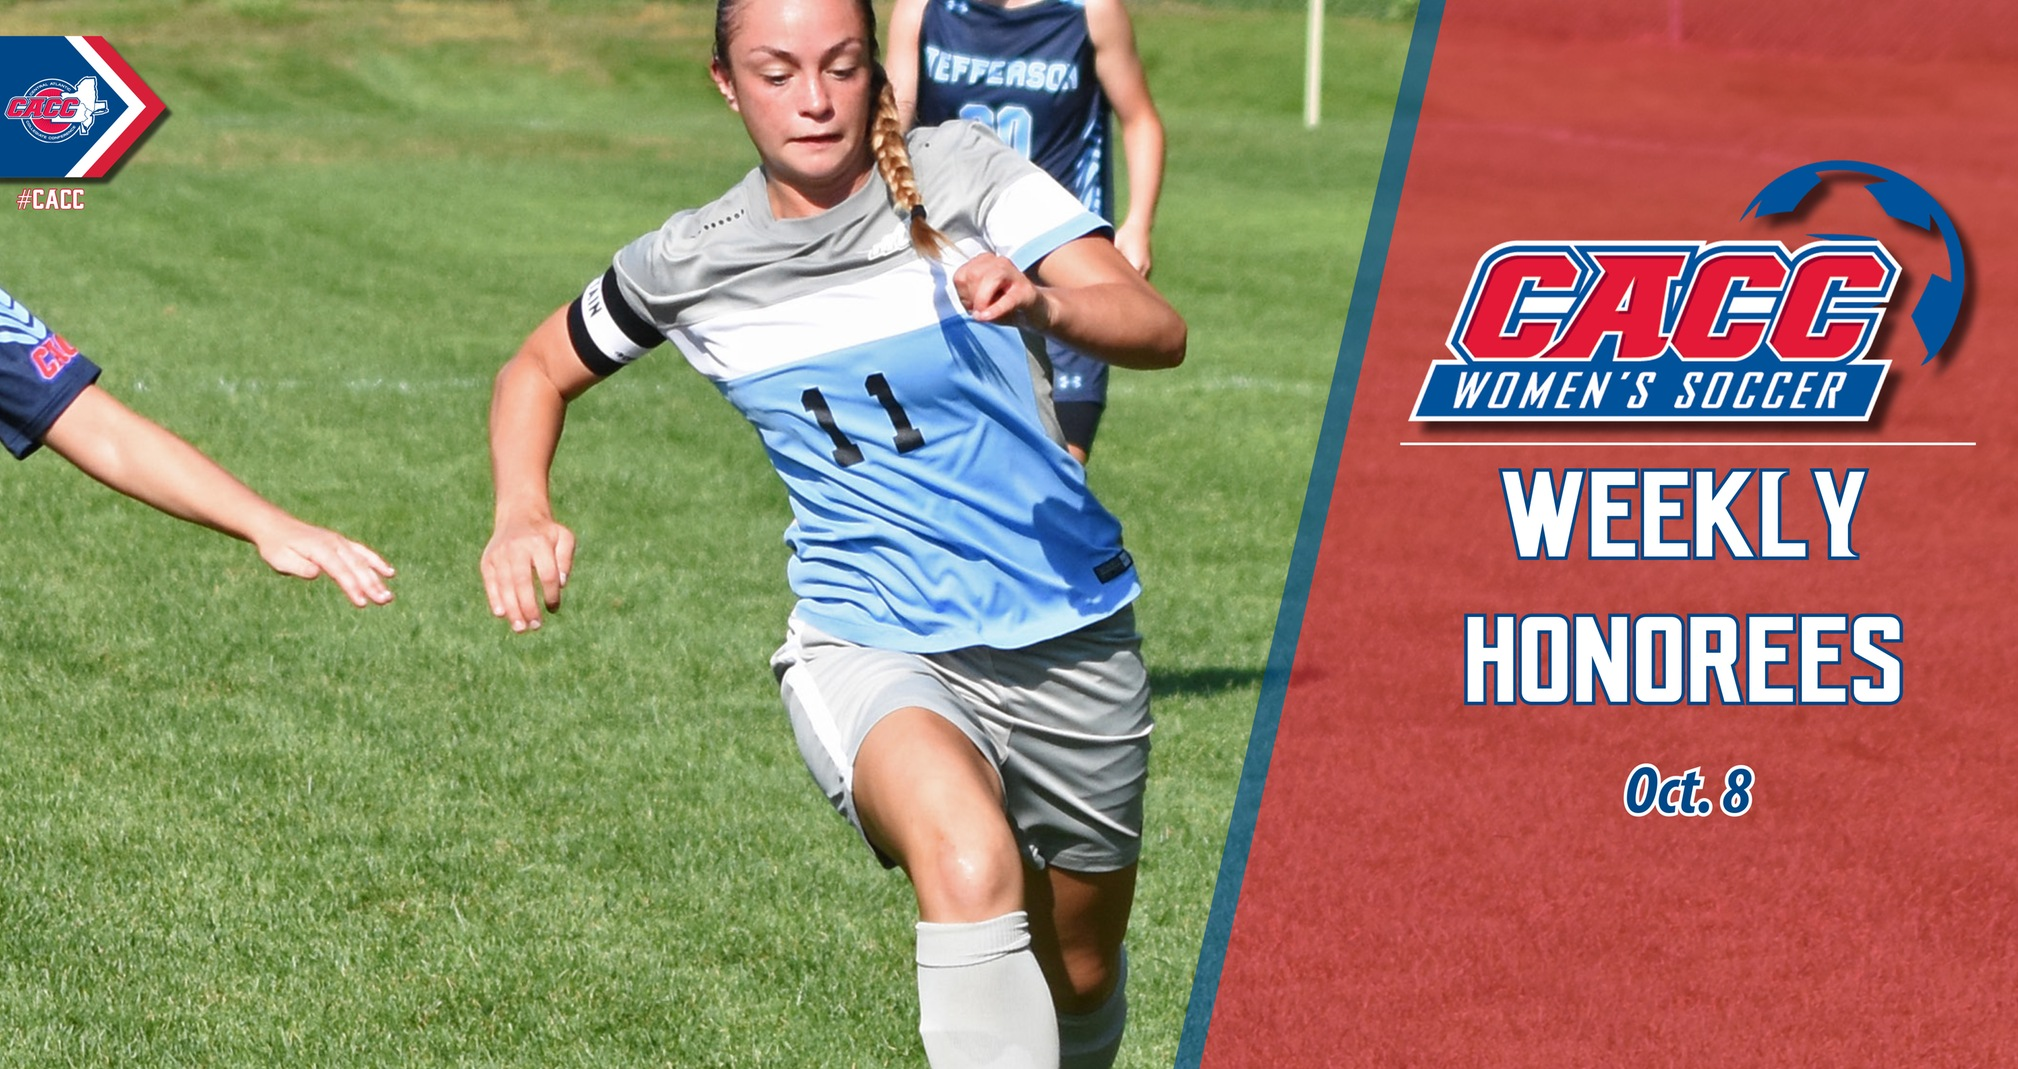 CACC Women's Soccer Weekly Honorees (Oct. 8)